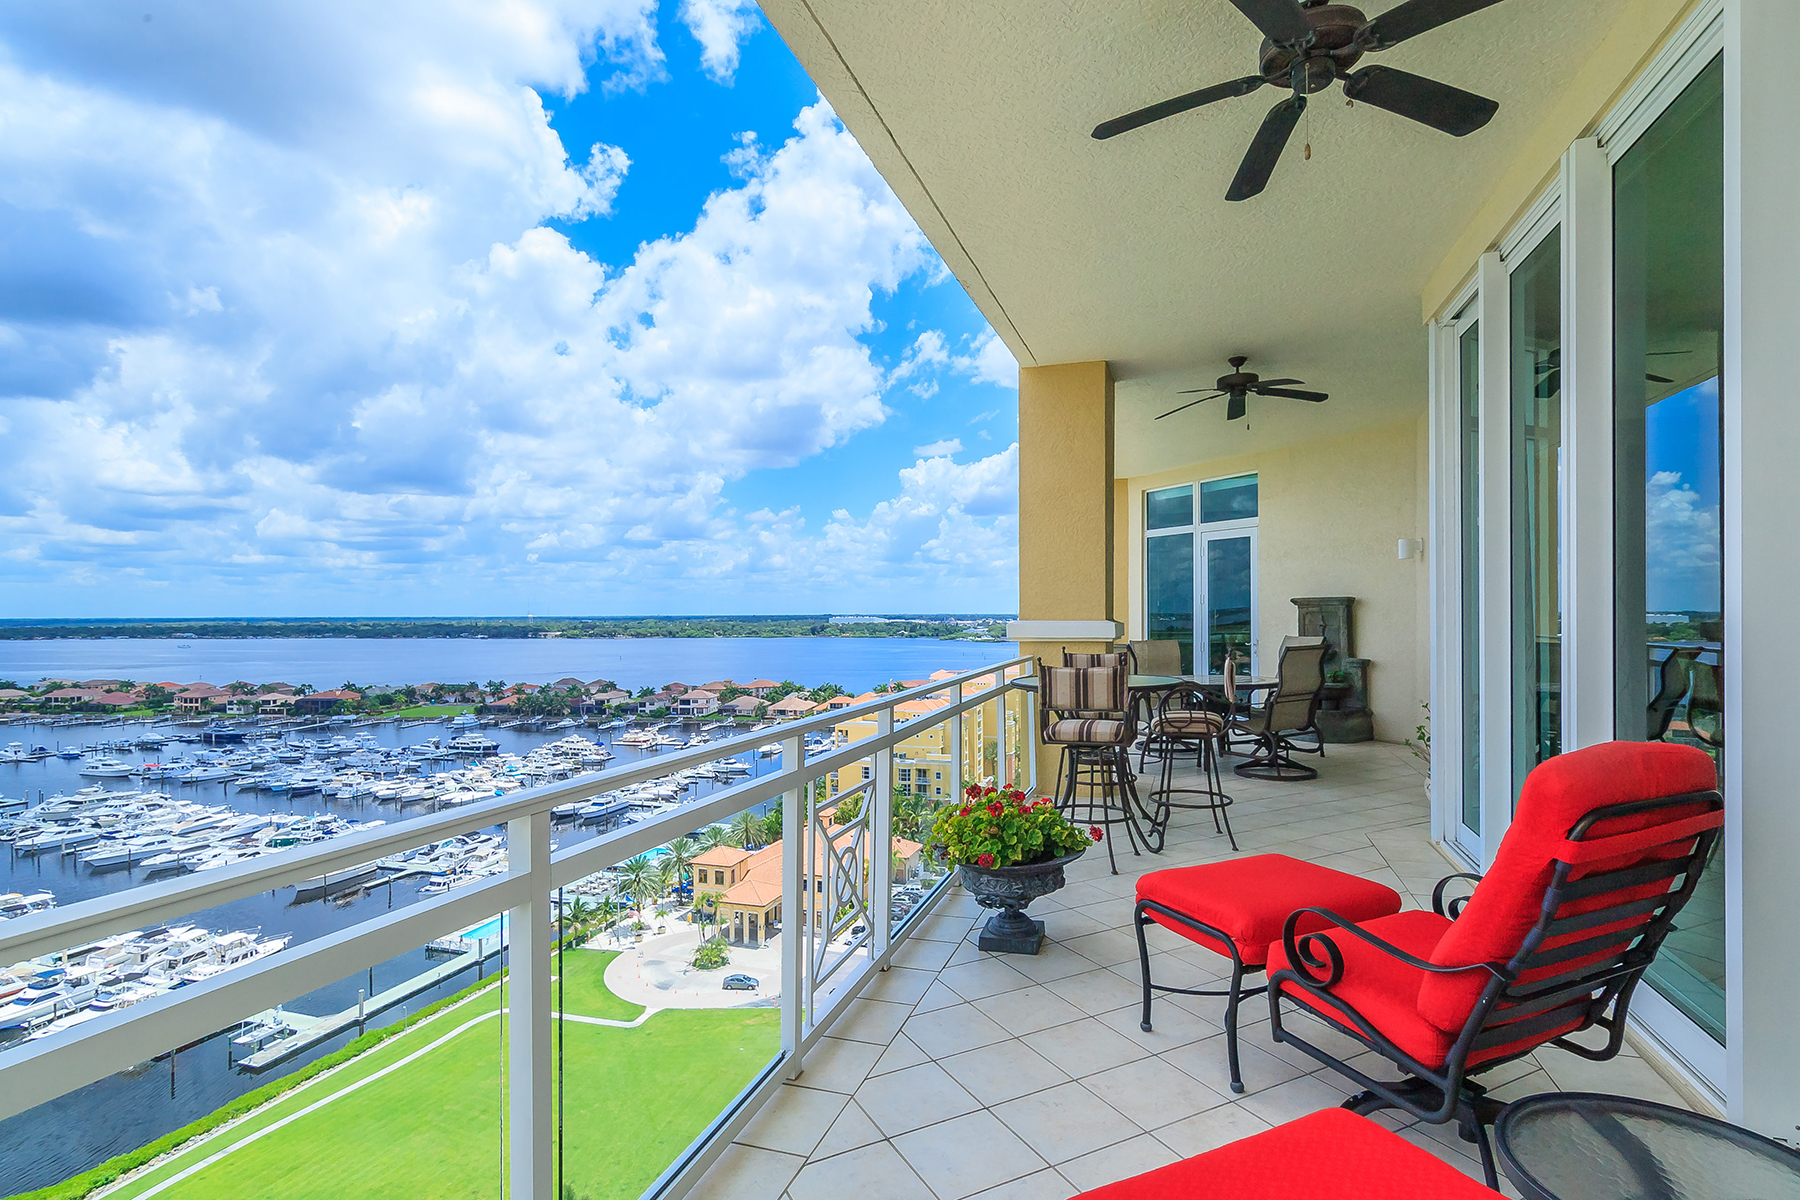 Condominium for Sale at BEL MARE 130 Riviera Dunes Way PH101 Palmetto, Florida, 34221 United States